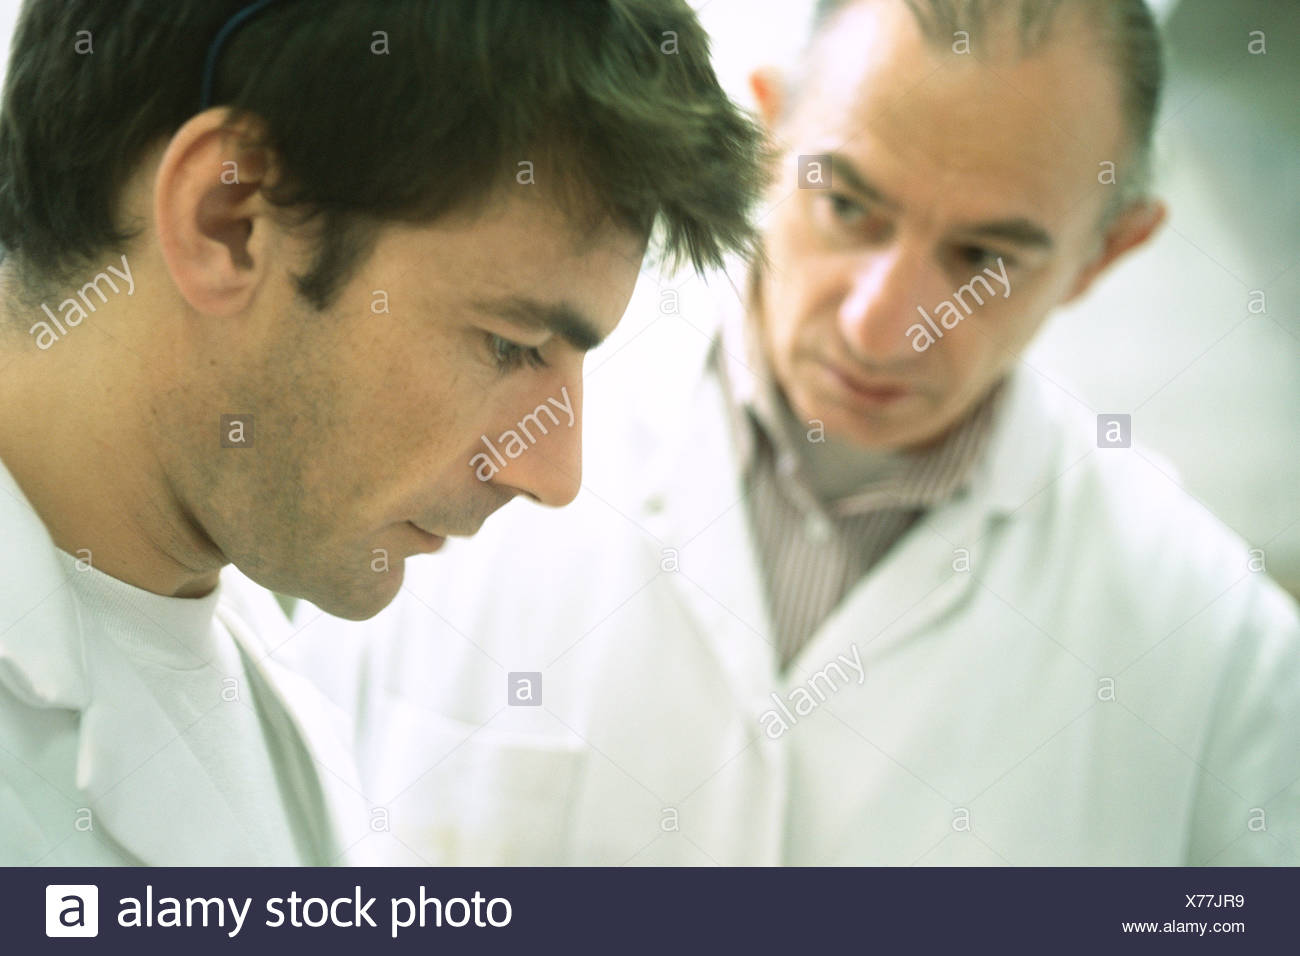 Worker and apprentice - Stock Image